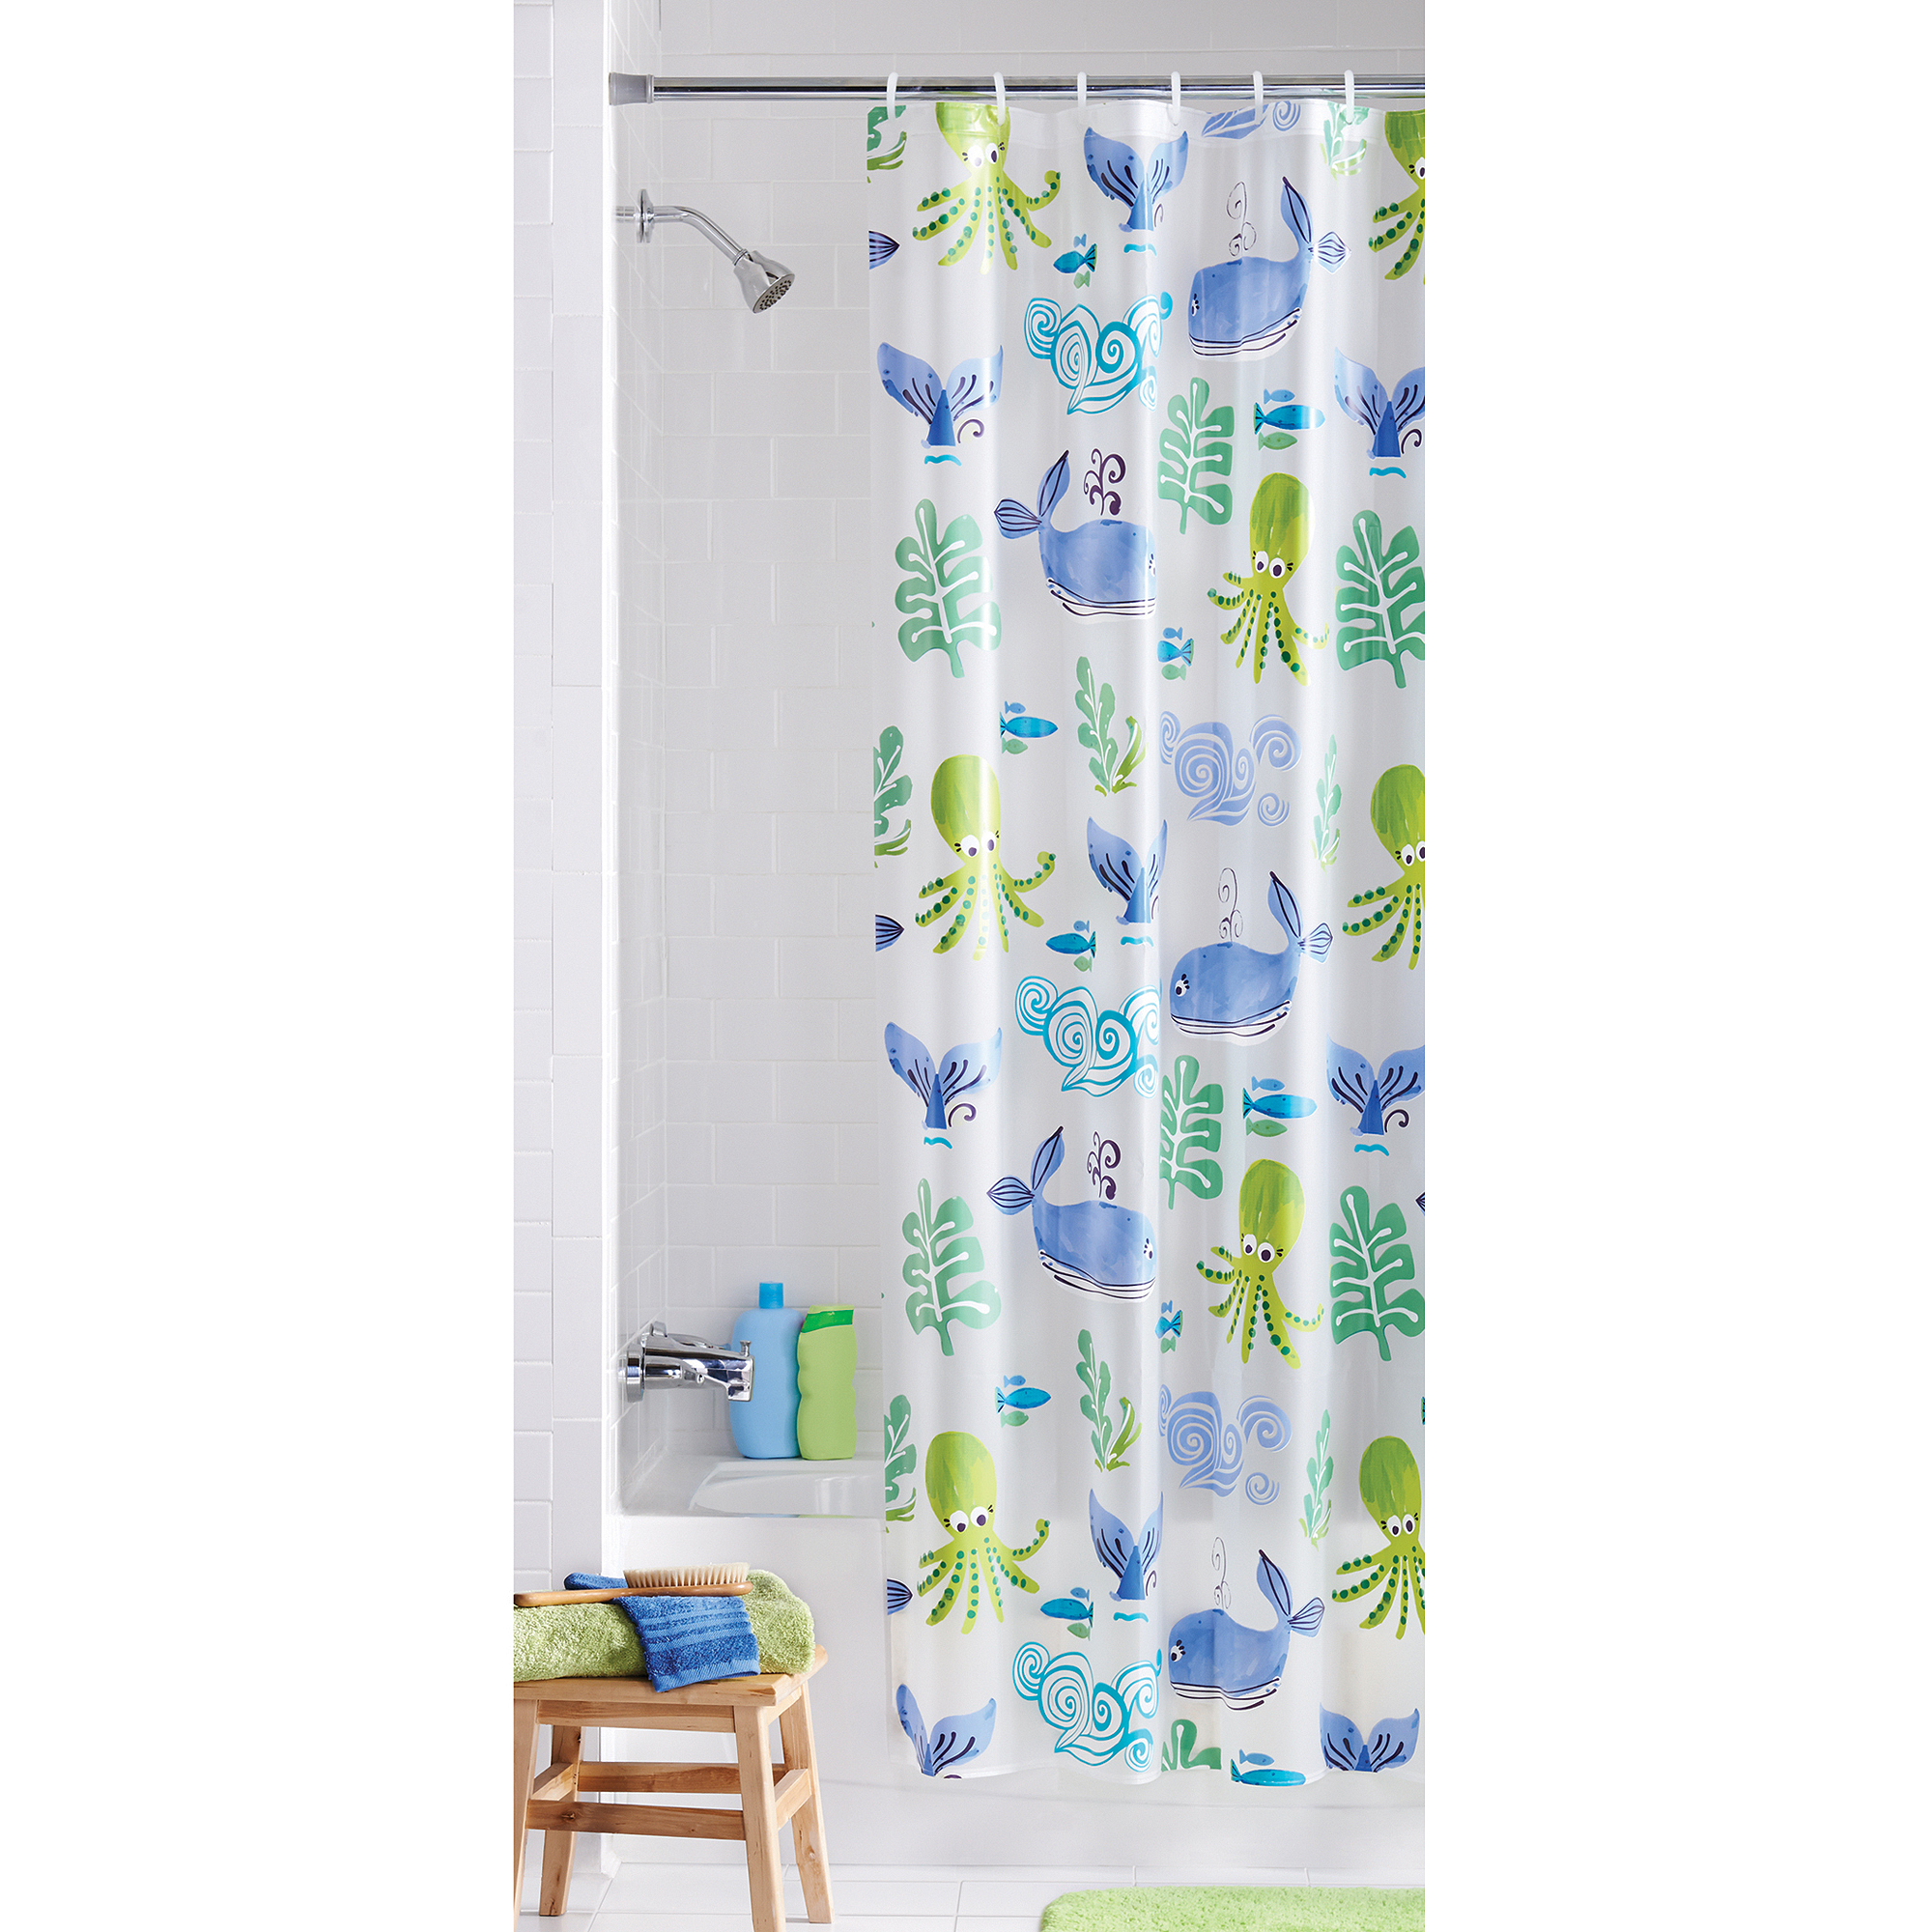 Mainstays Neptune PEVA Vinyl Shower Curtain - Walmart.com